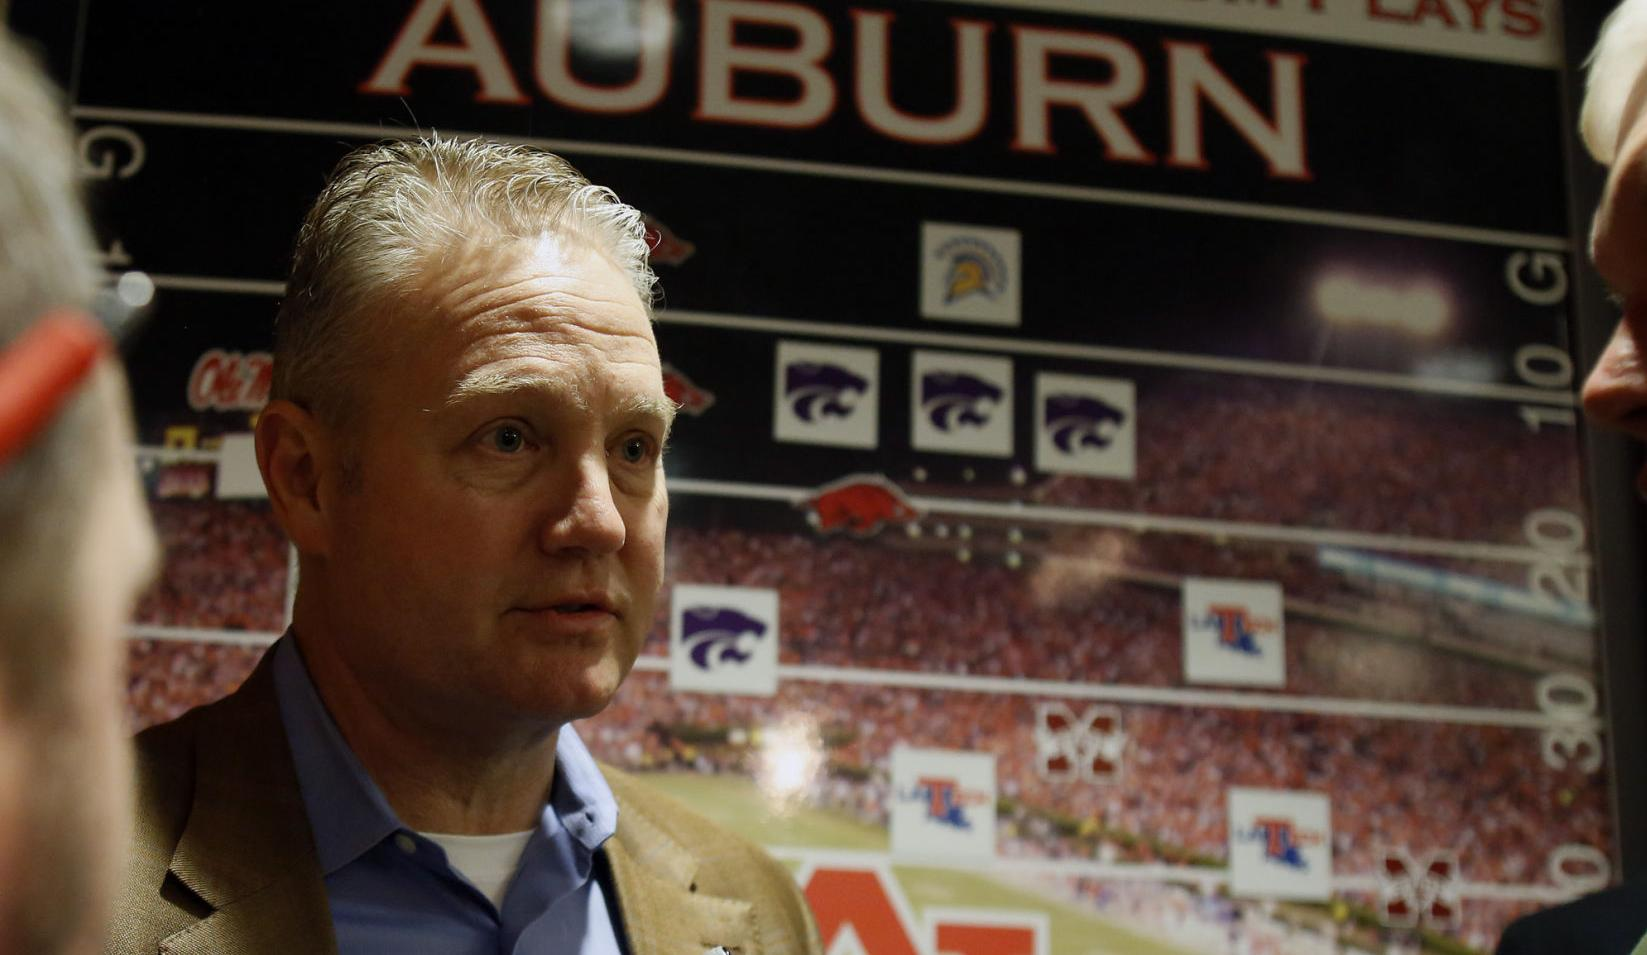 Report: Auburn investigating claim that tutor took exam for football player